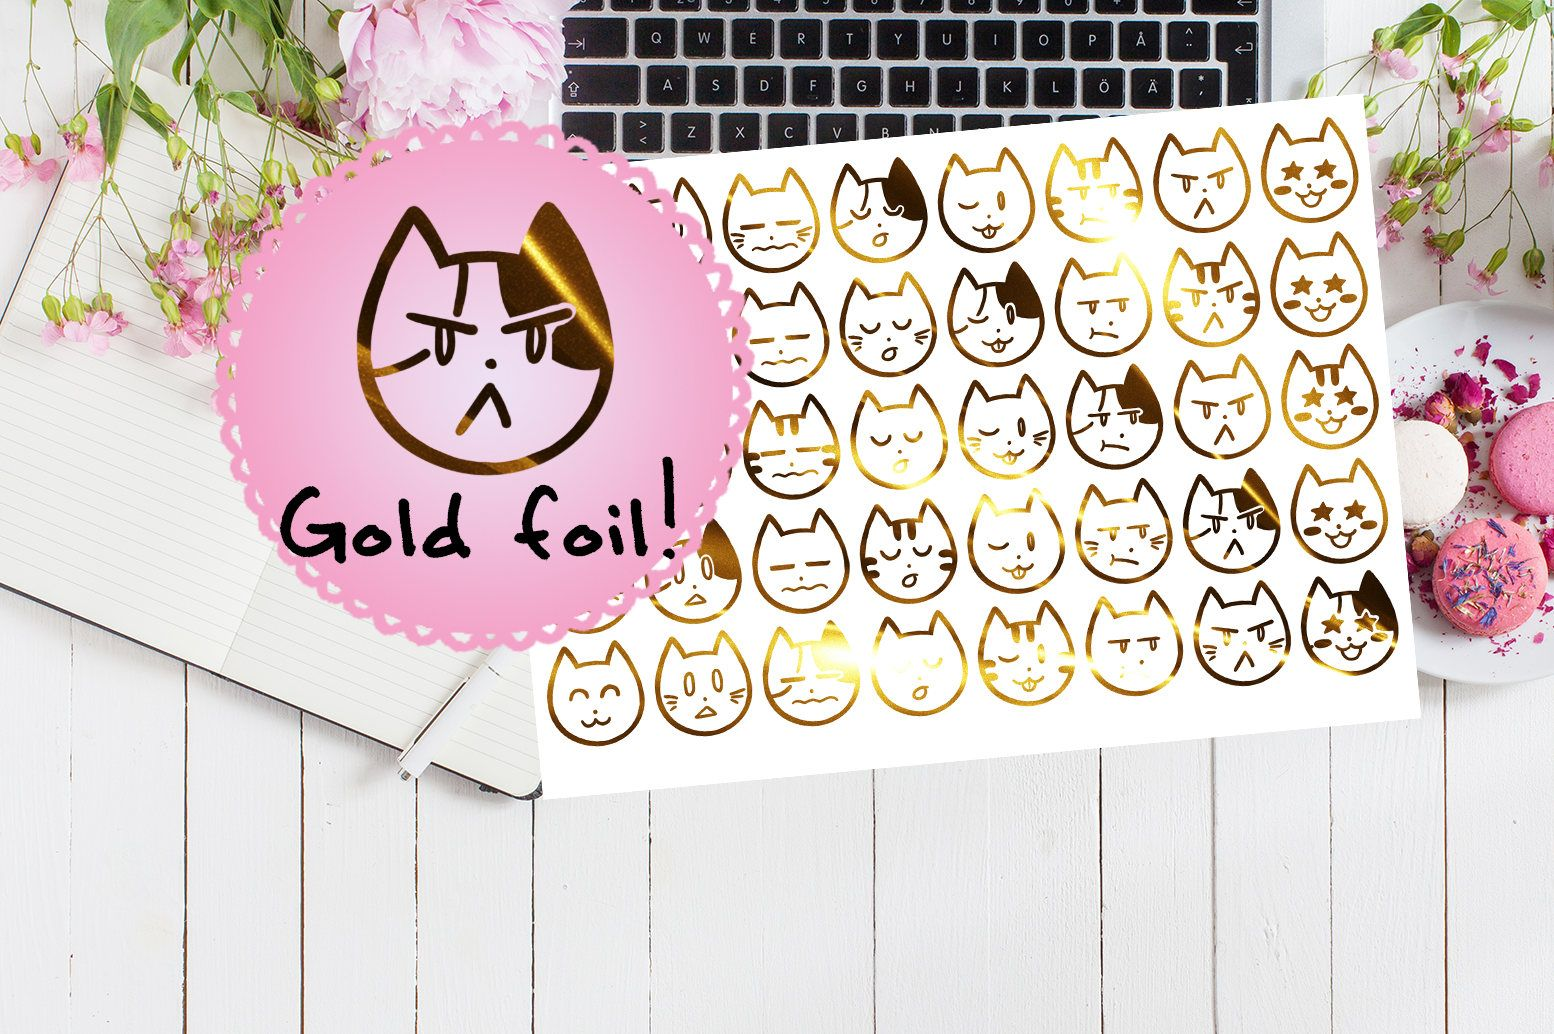 40 clear foil cat mood stickers gold foiled metallic stickers planner cute animal diary calendar tracker shiny gift kitten